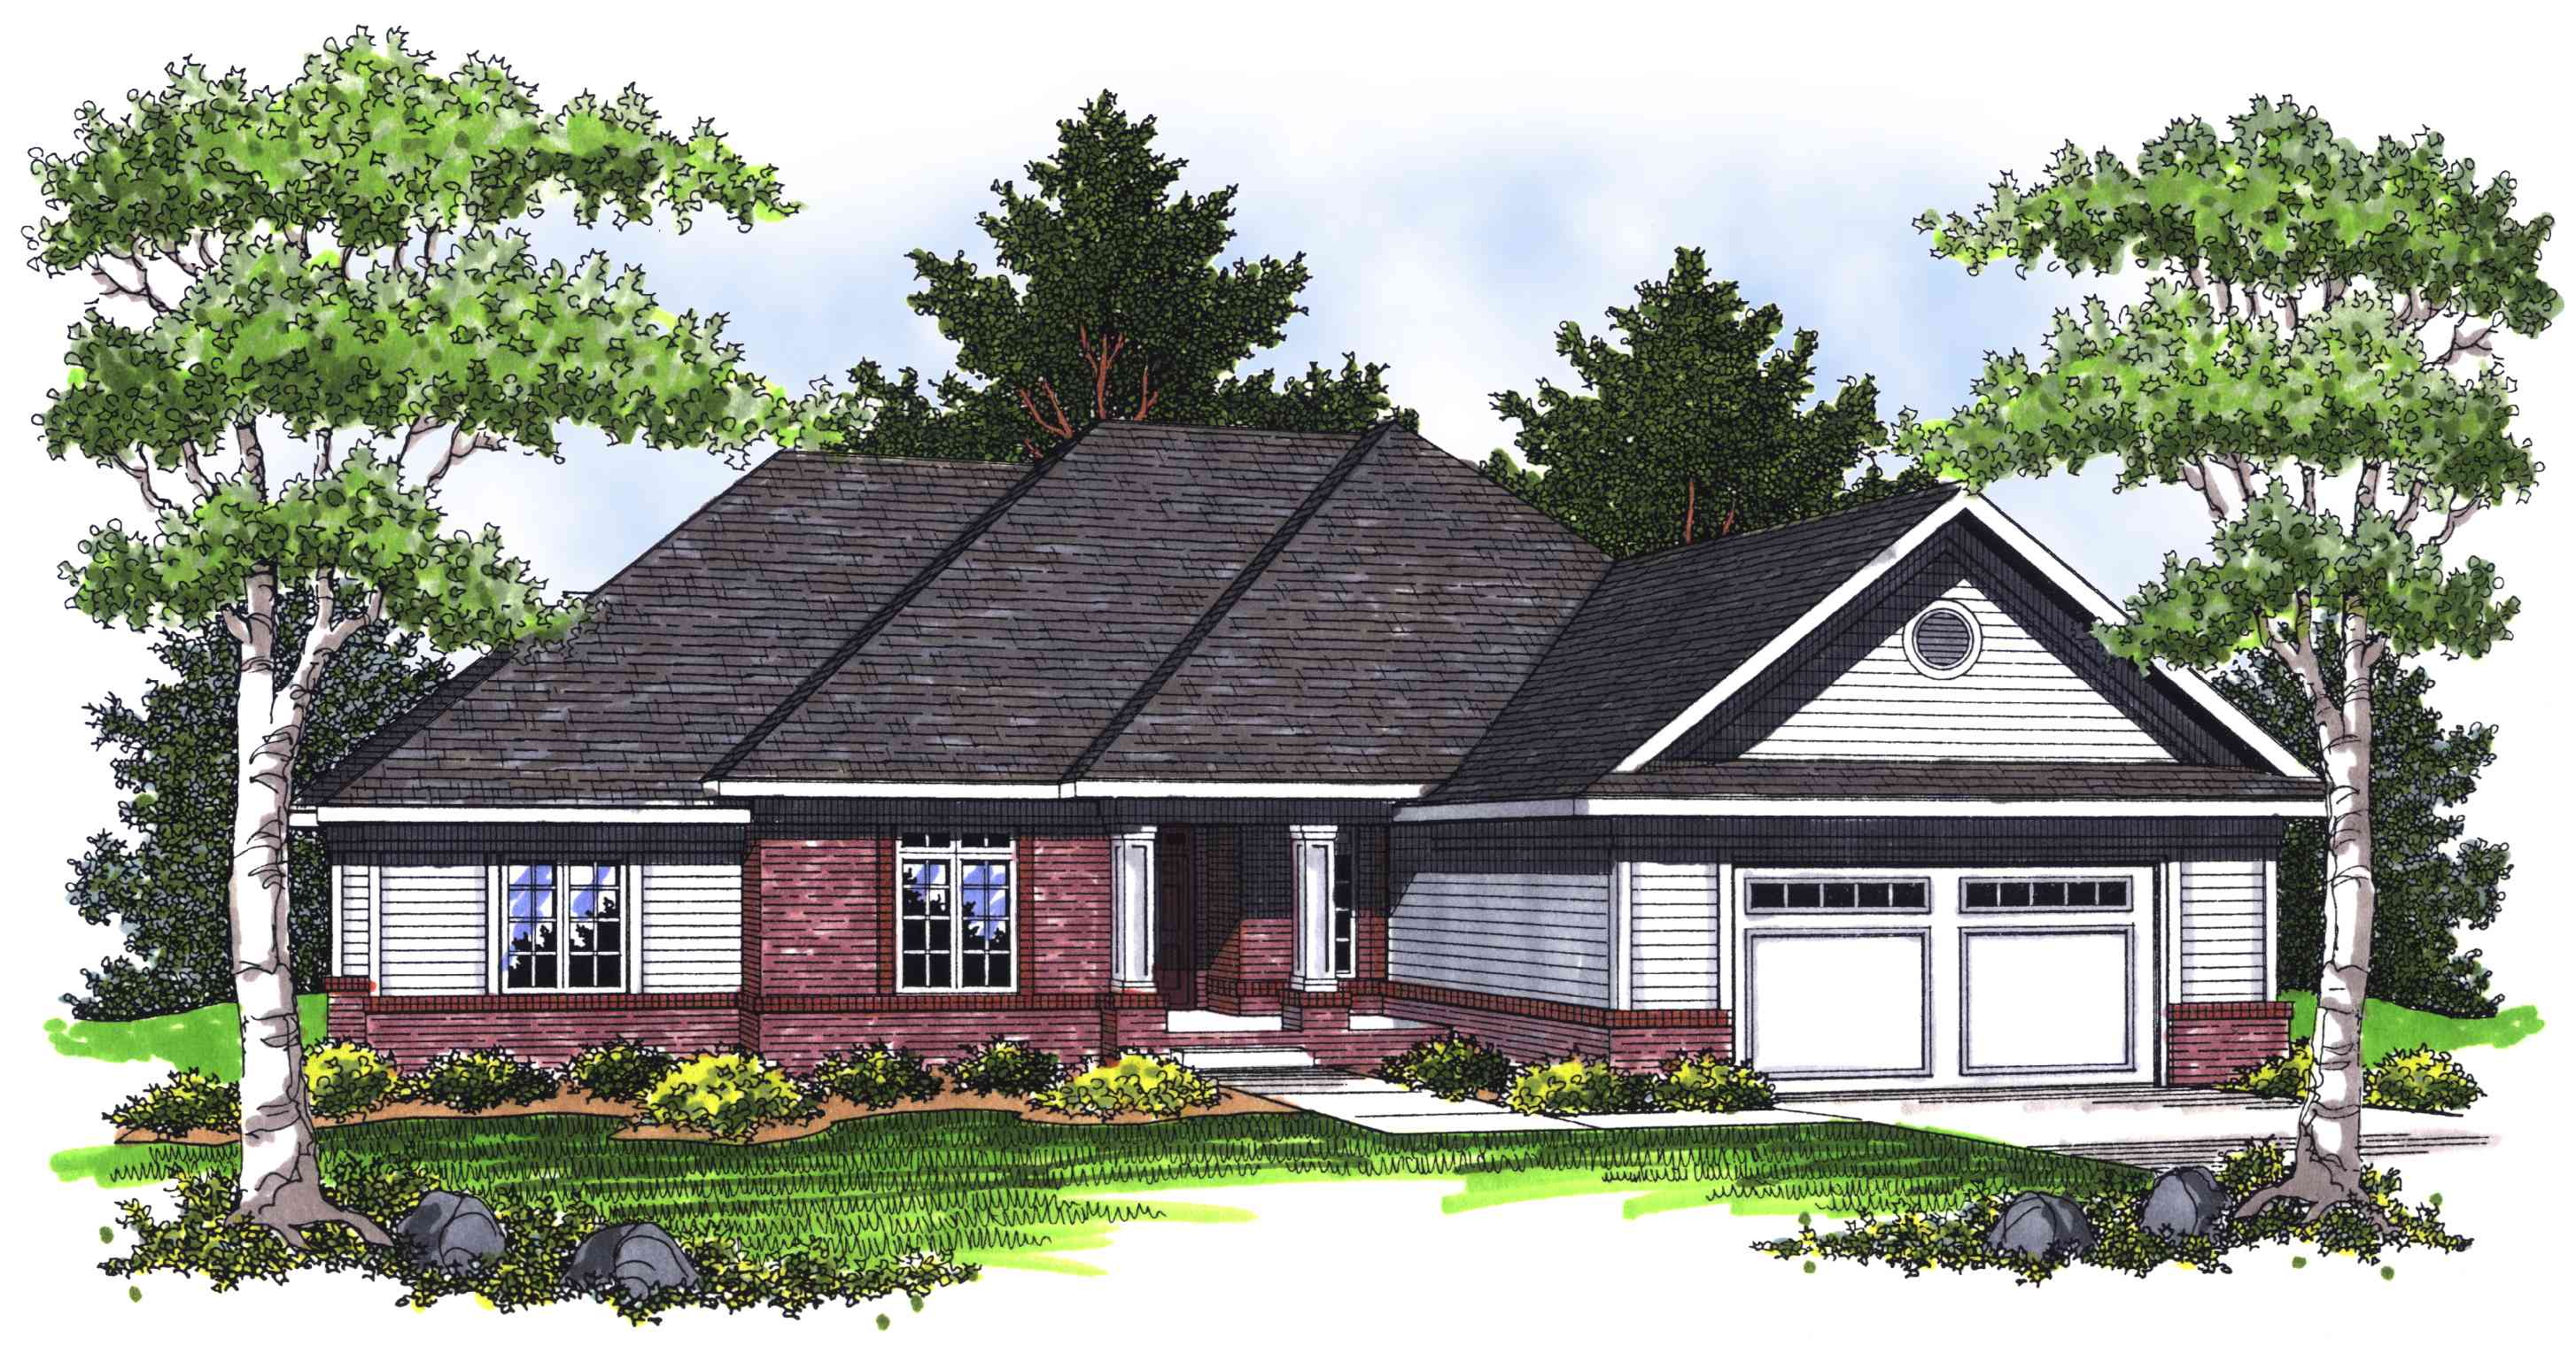 Plan 89231AH: Ranch Home with Hip Roof on small house plans hip roof, rambler style house plans, two hip roof,